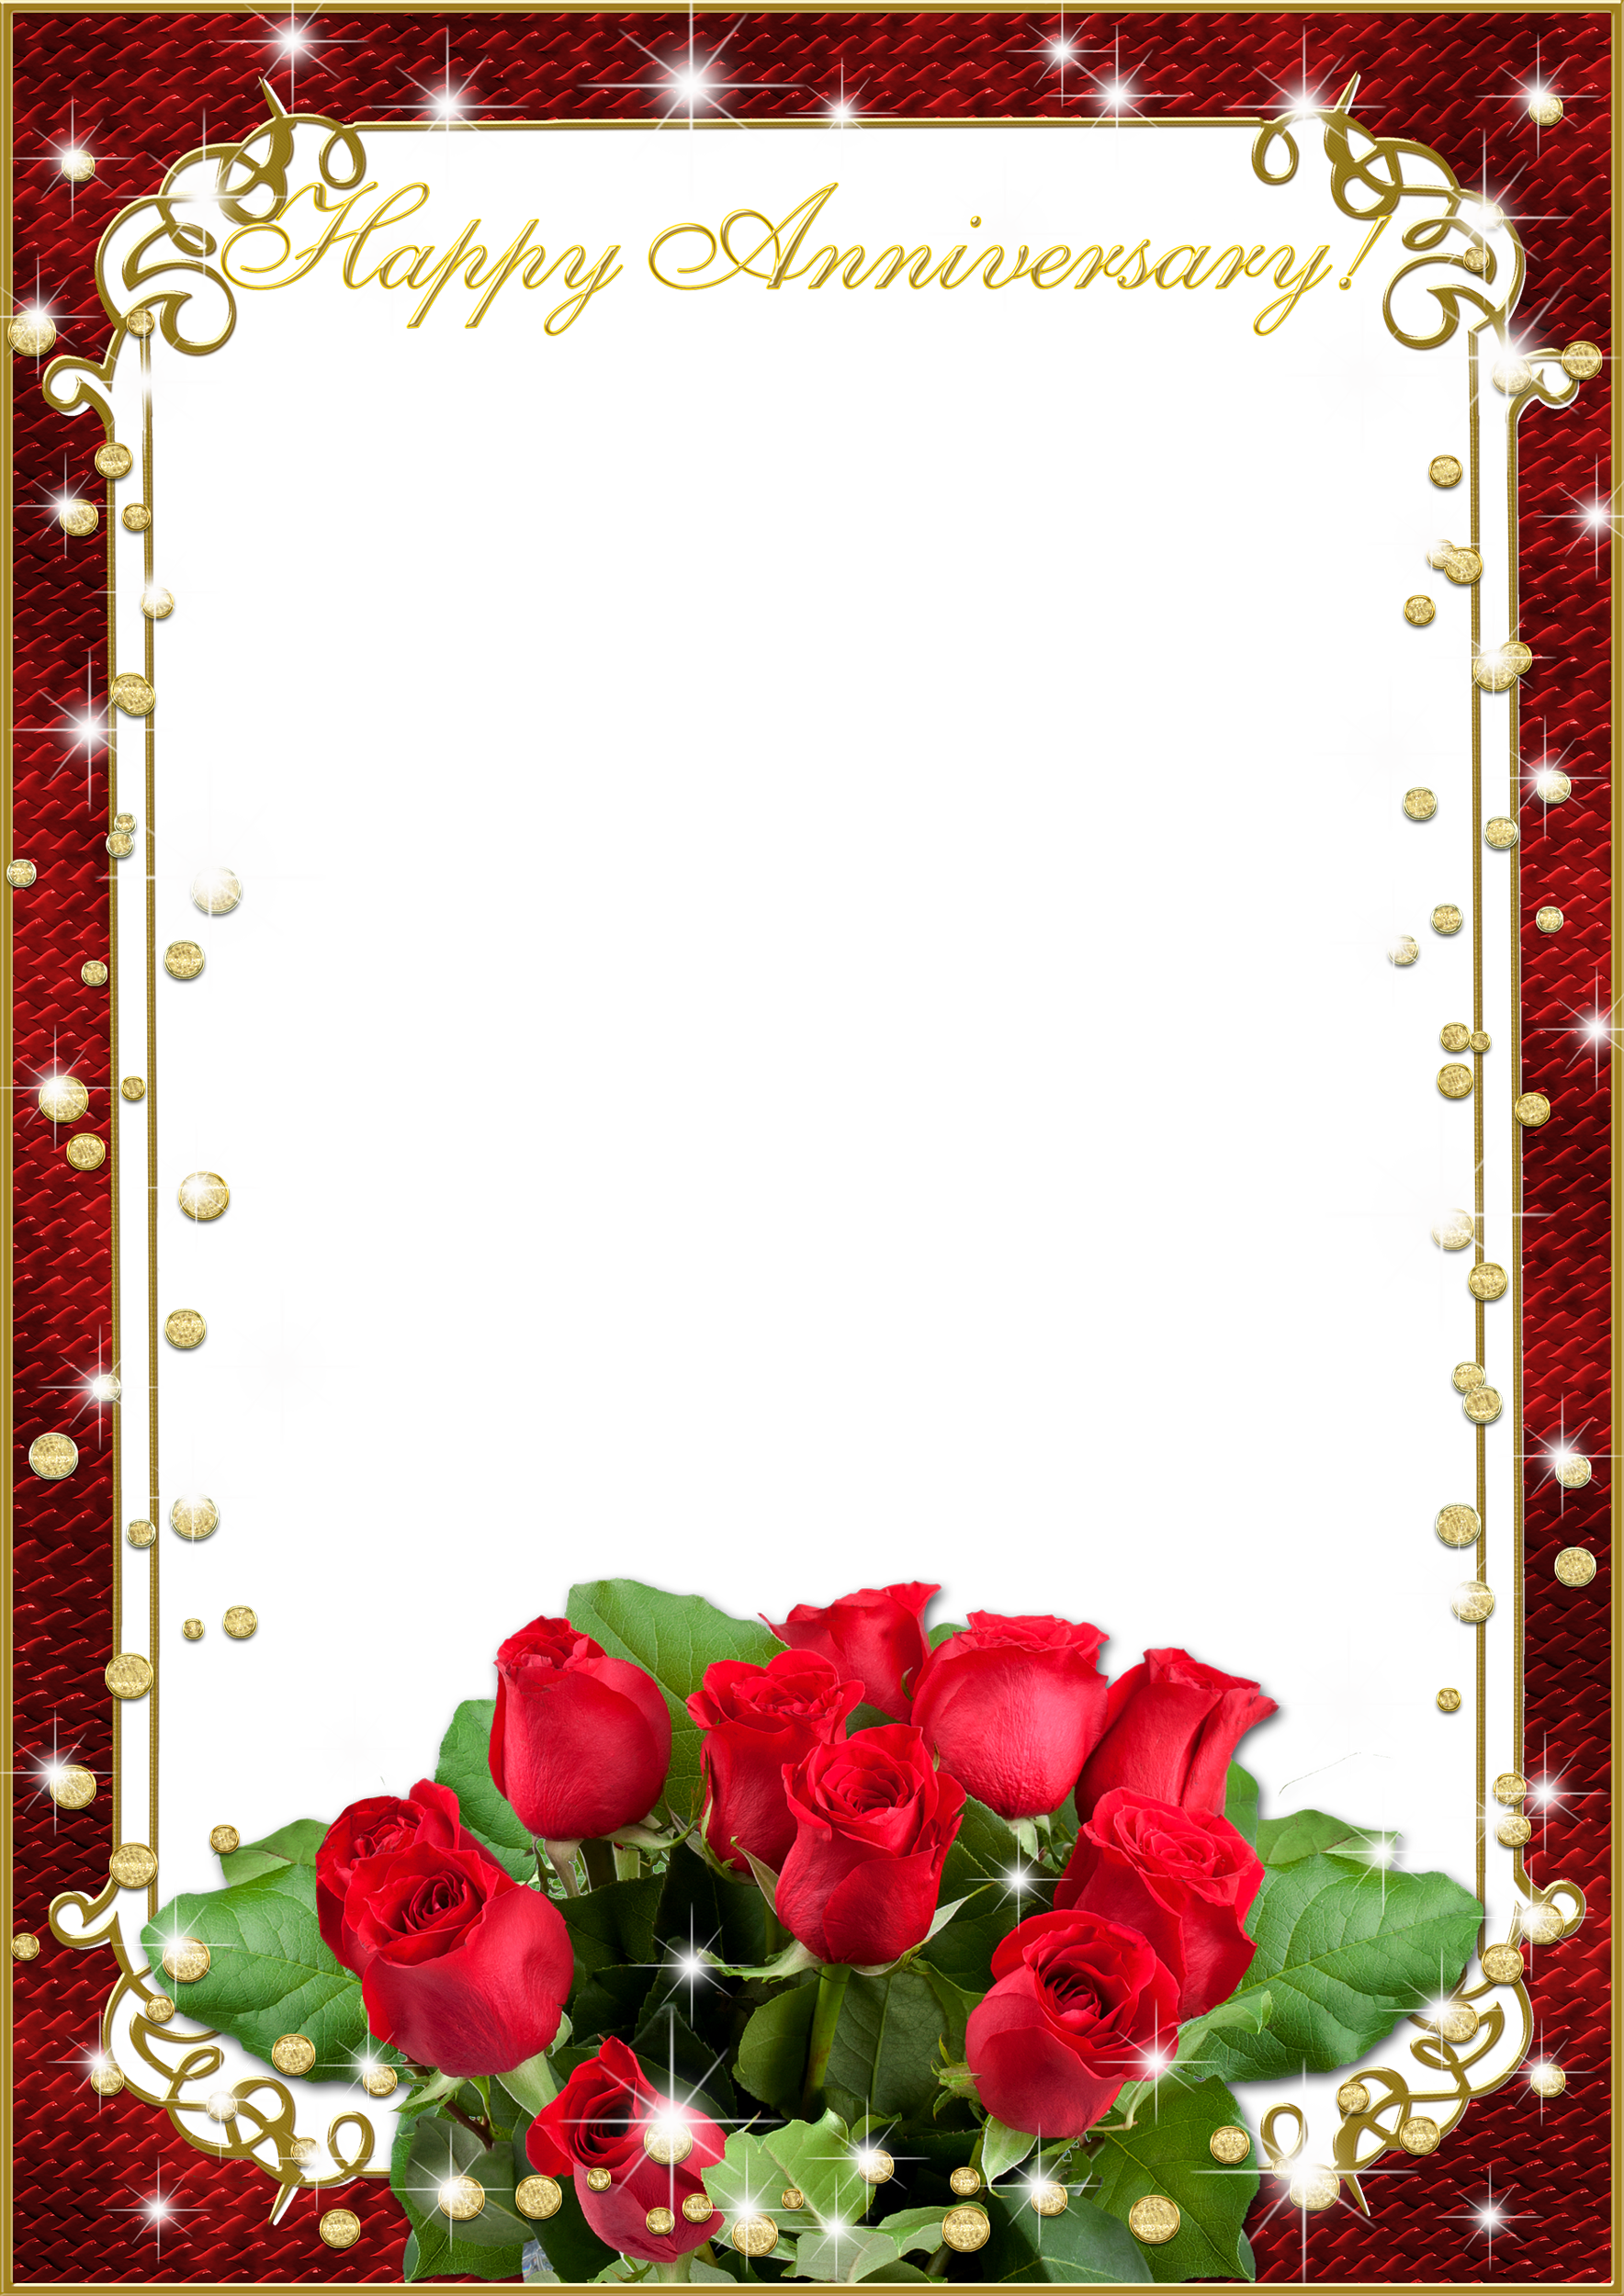 Png photo frame free download. Flower psd vector transparent